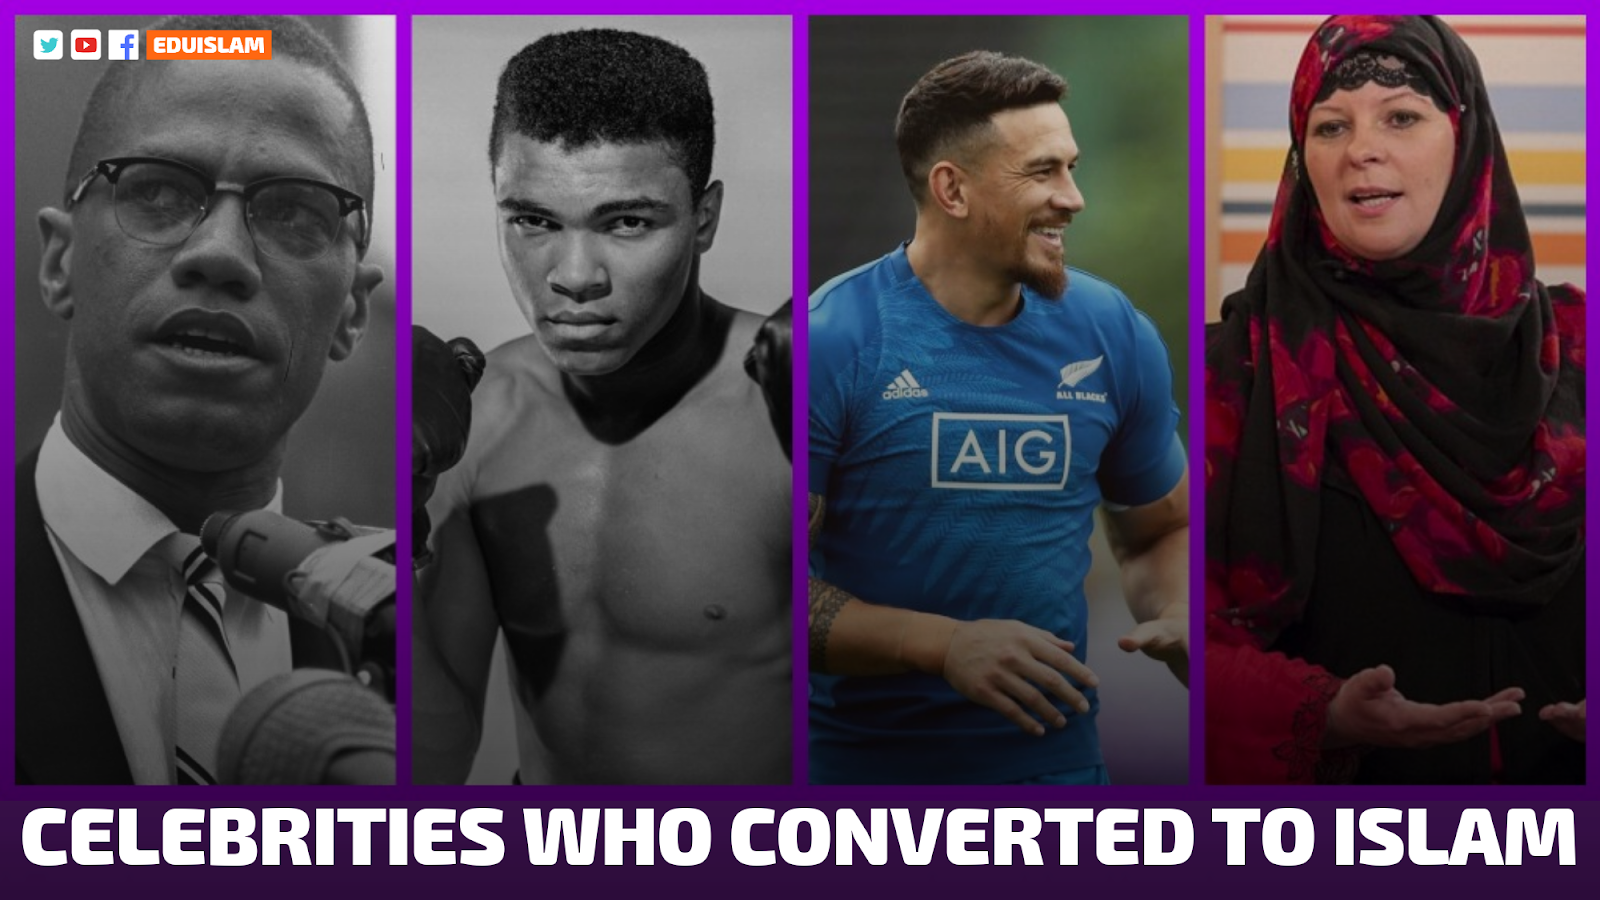 list of celebrities converted to Islam, famous Indian celebrities who converted to Islam, priest converted to Islam, cricket players converted to Islam, Christian converted to Islam, 2018, 2019, 2020, Famous Muslim Celebrities